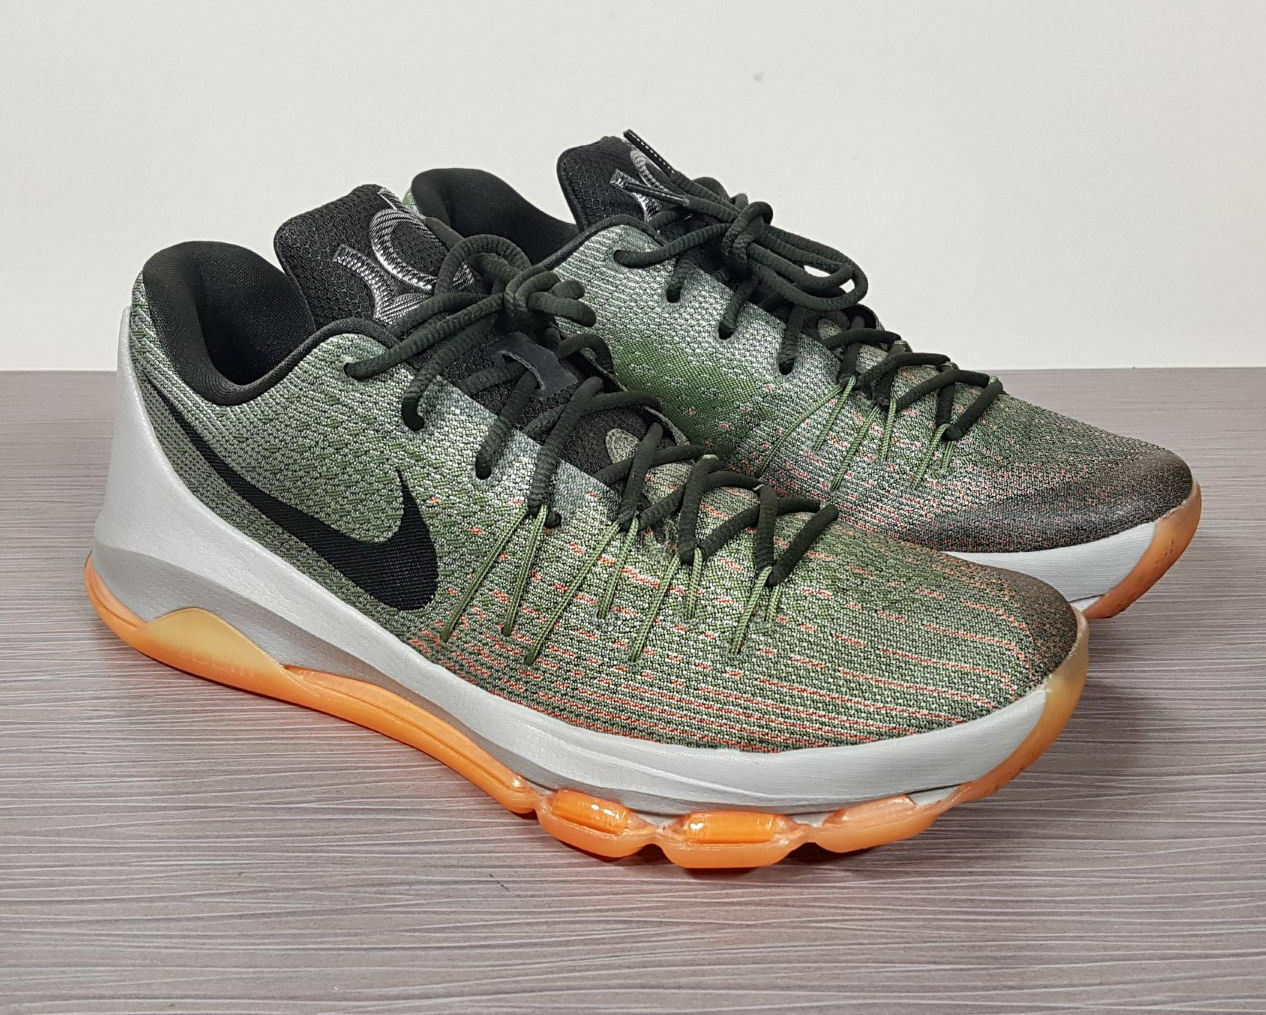 Nike KD 8 Kevin Durant Lunar Grey/Sequoia-Alligator-Bright Citrus Mens Comfortable